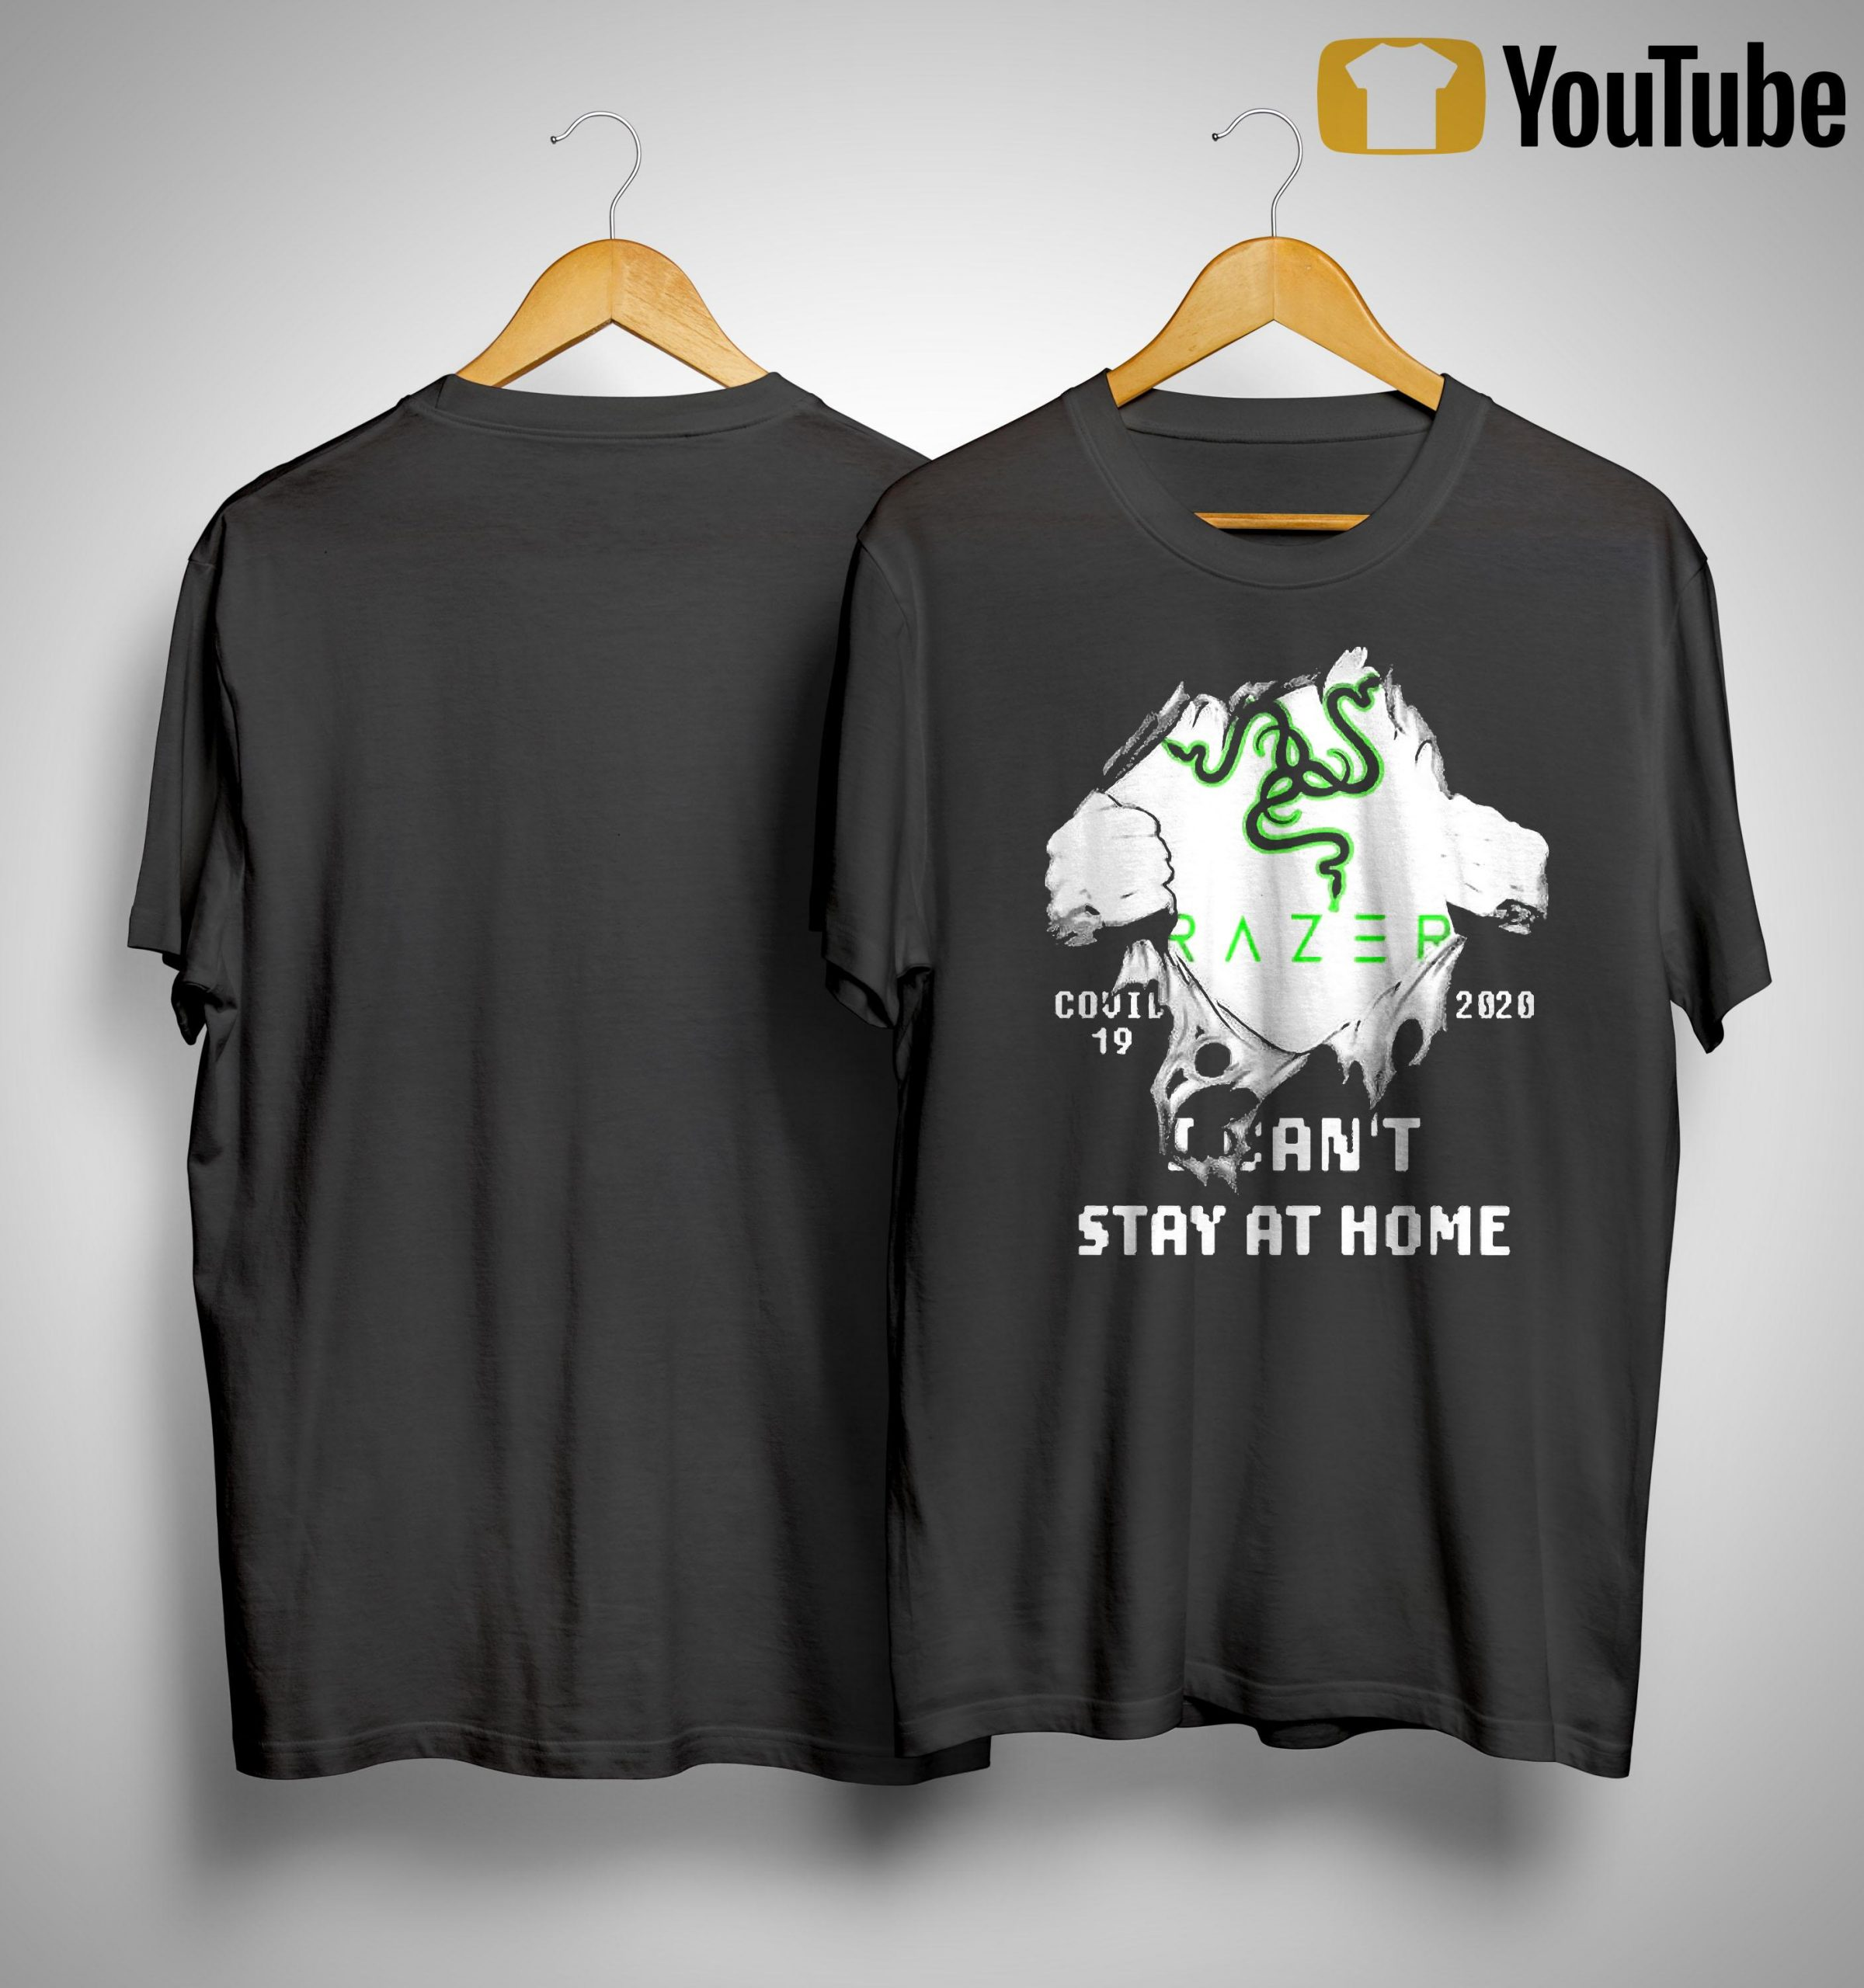 Inside Me Razer Covid 19 2020 I Can't Stay At Home Shirt